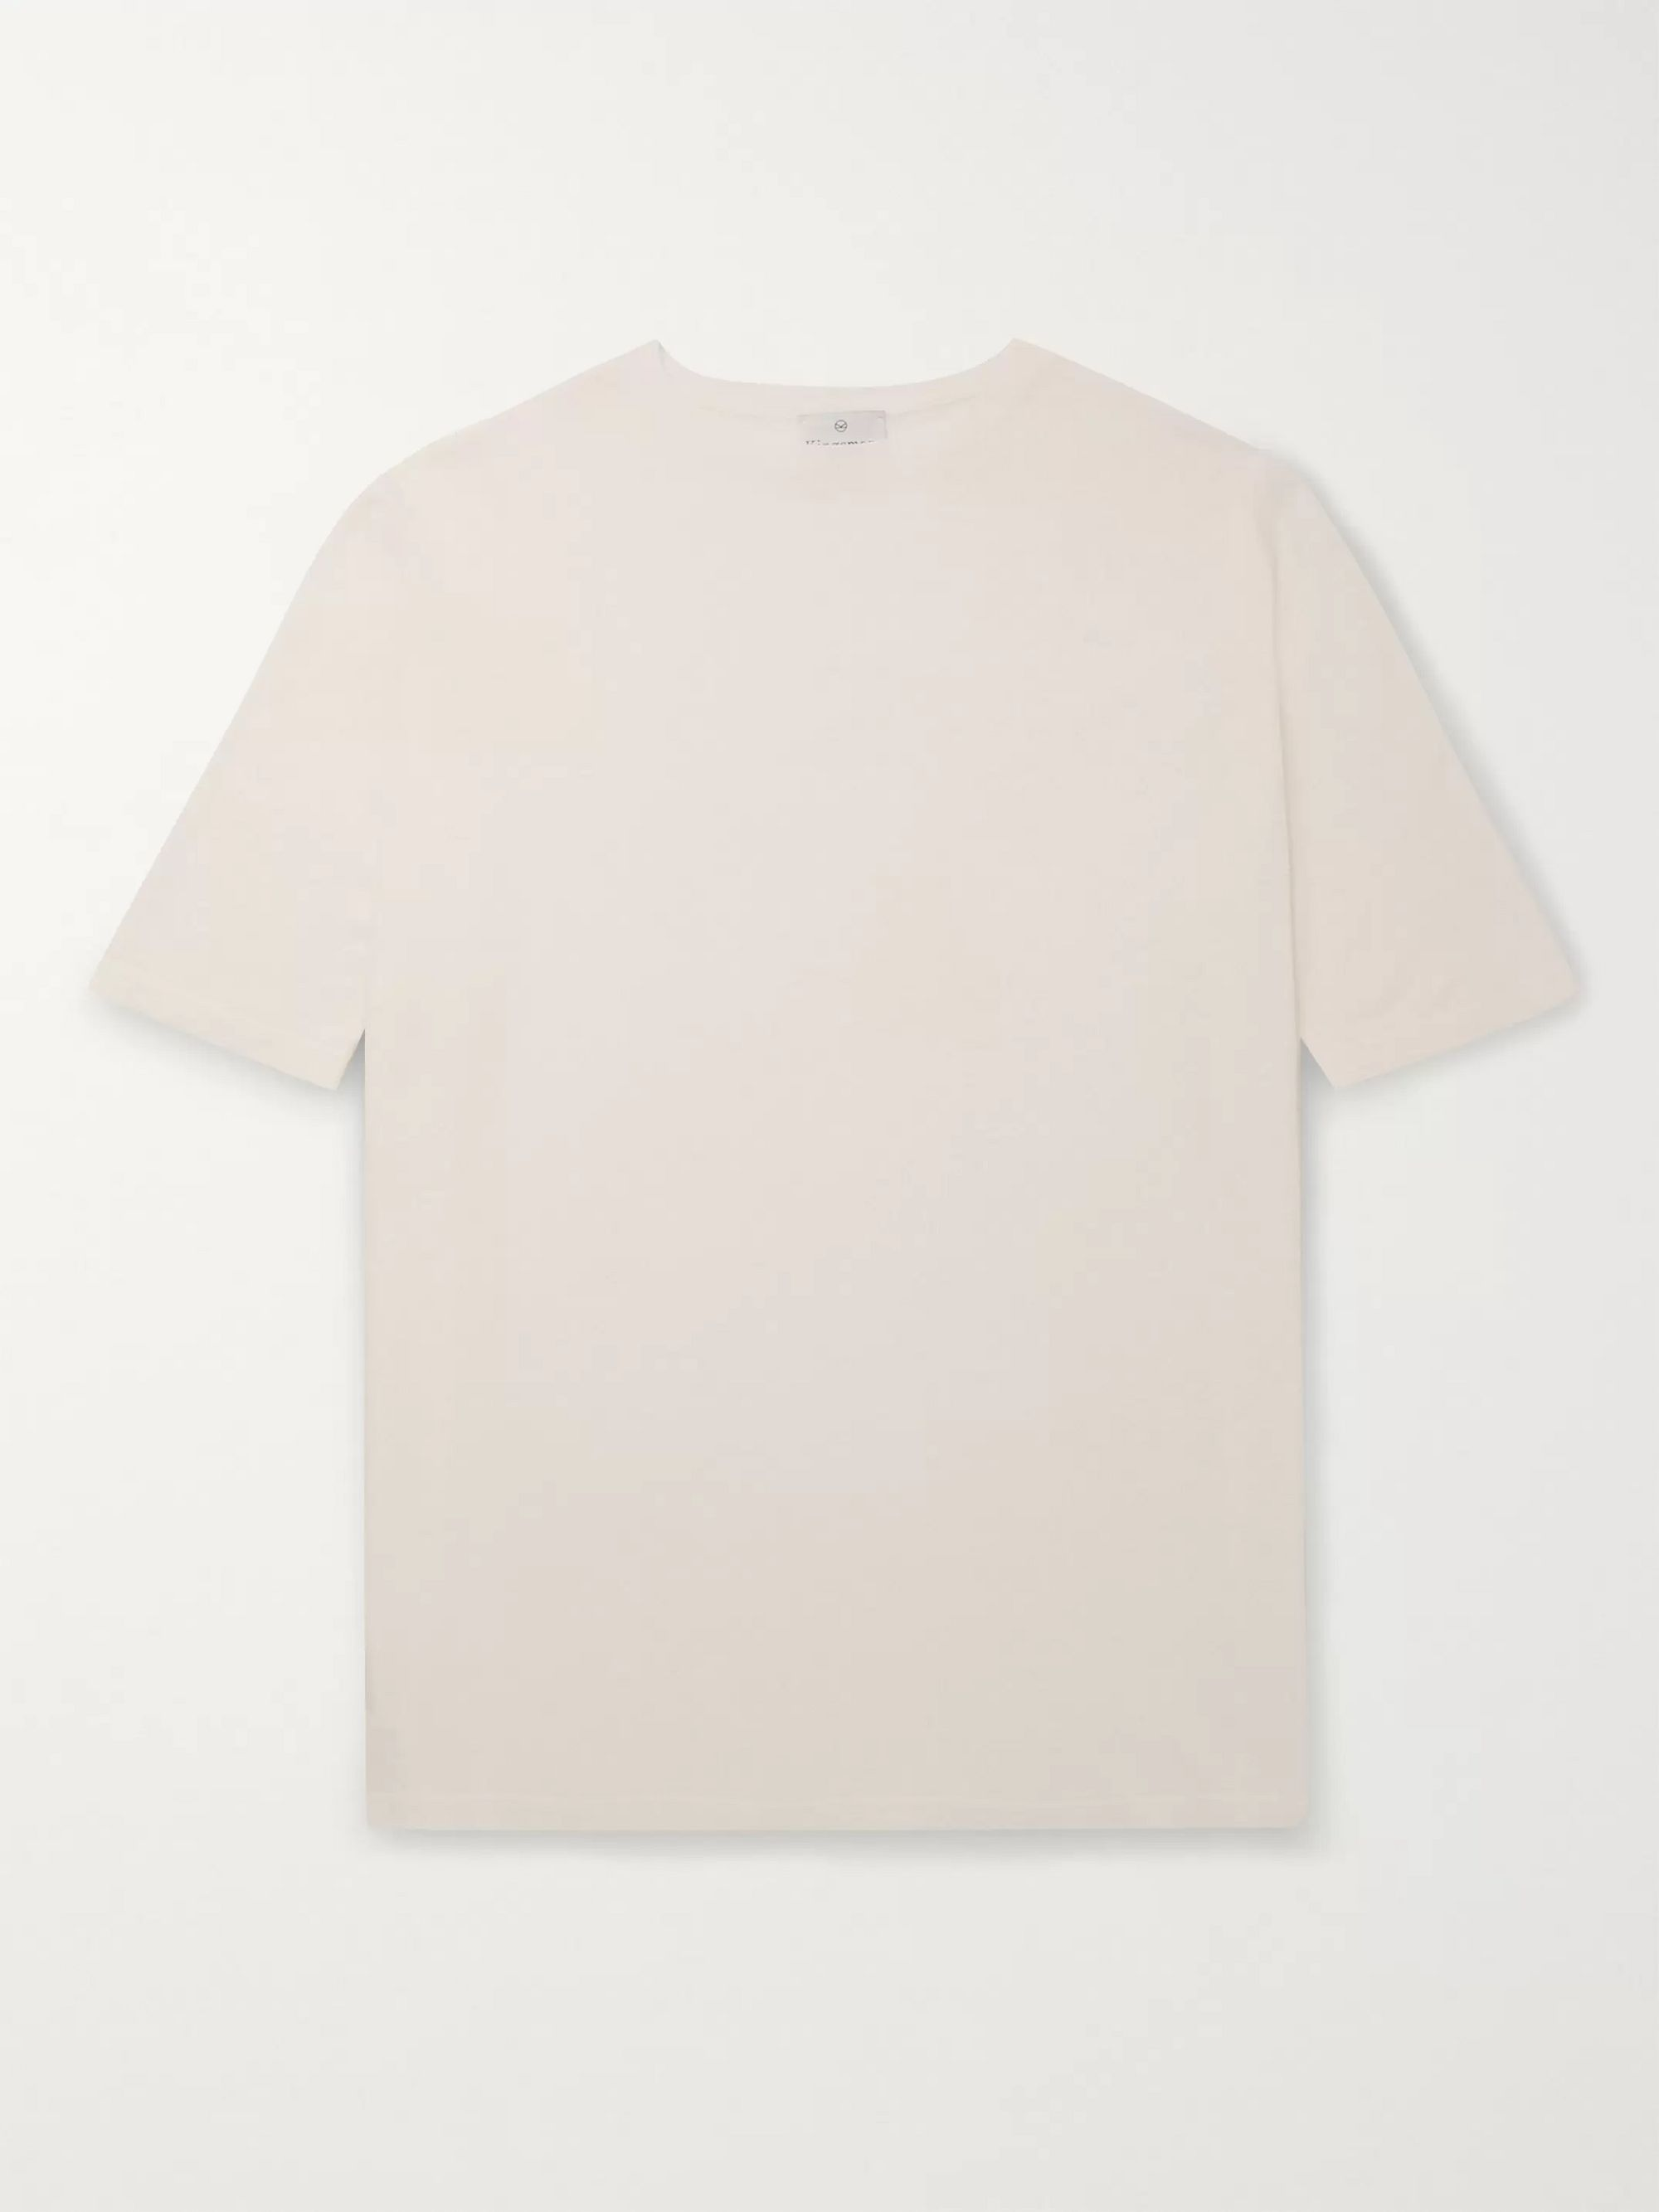 Kingsman Wool T-Shirt